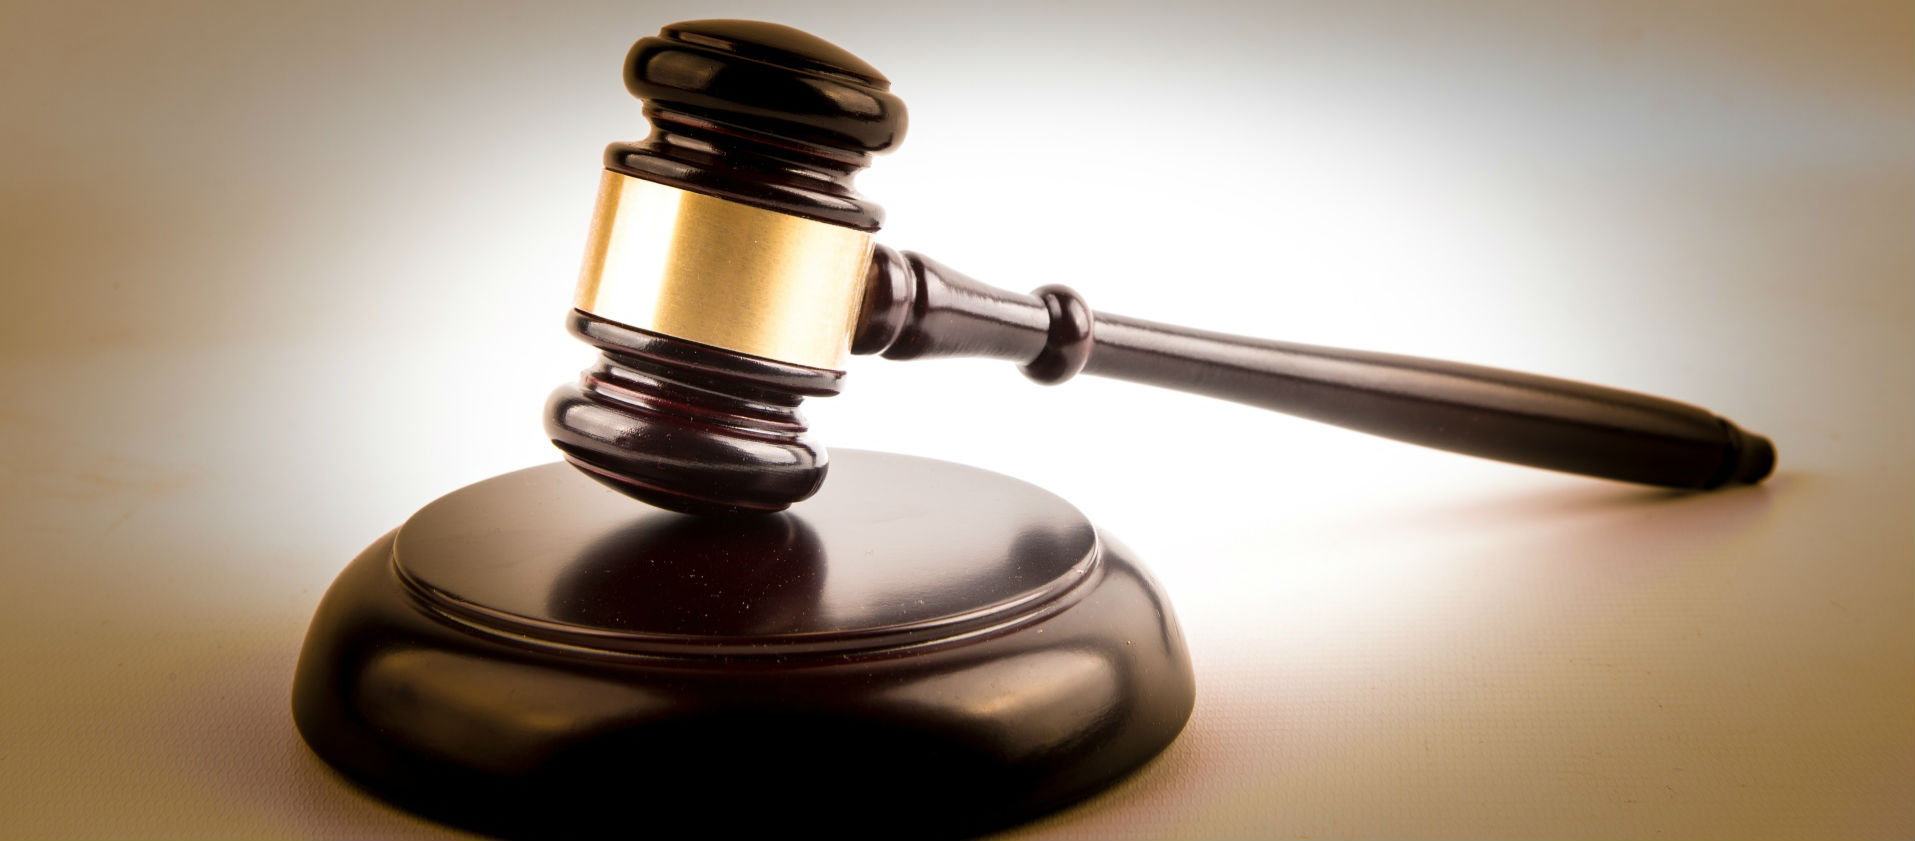 Accused Couple In Court After Child Assault